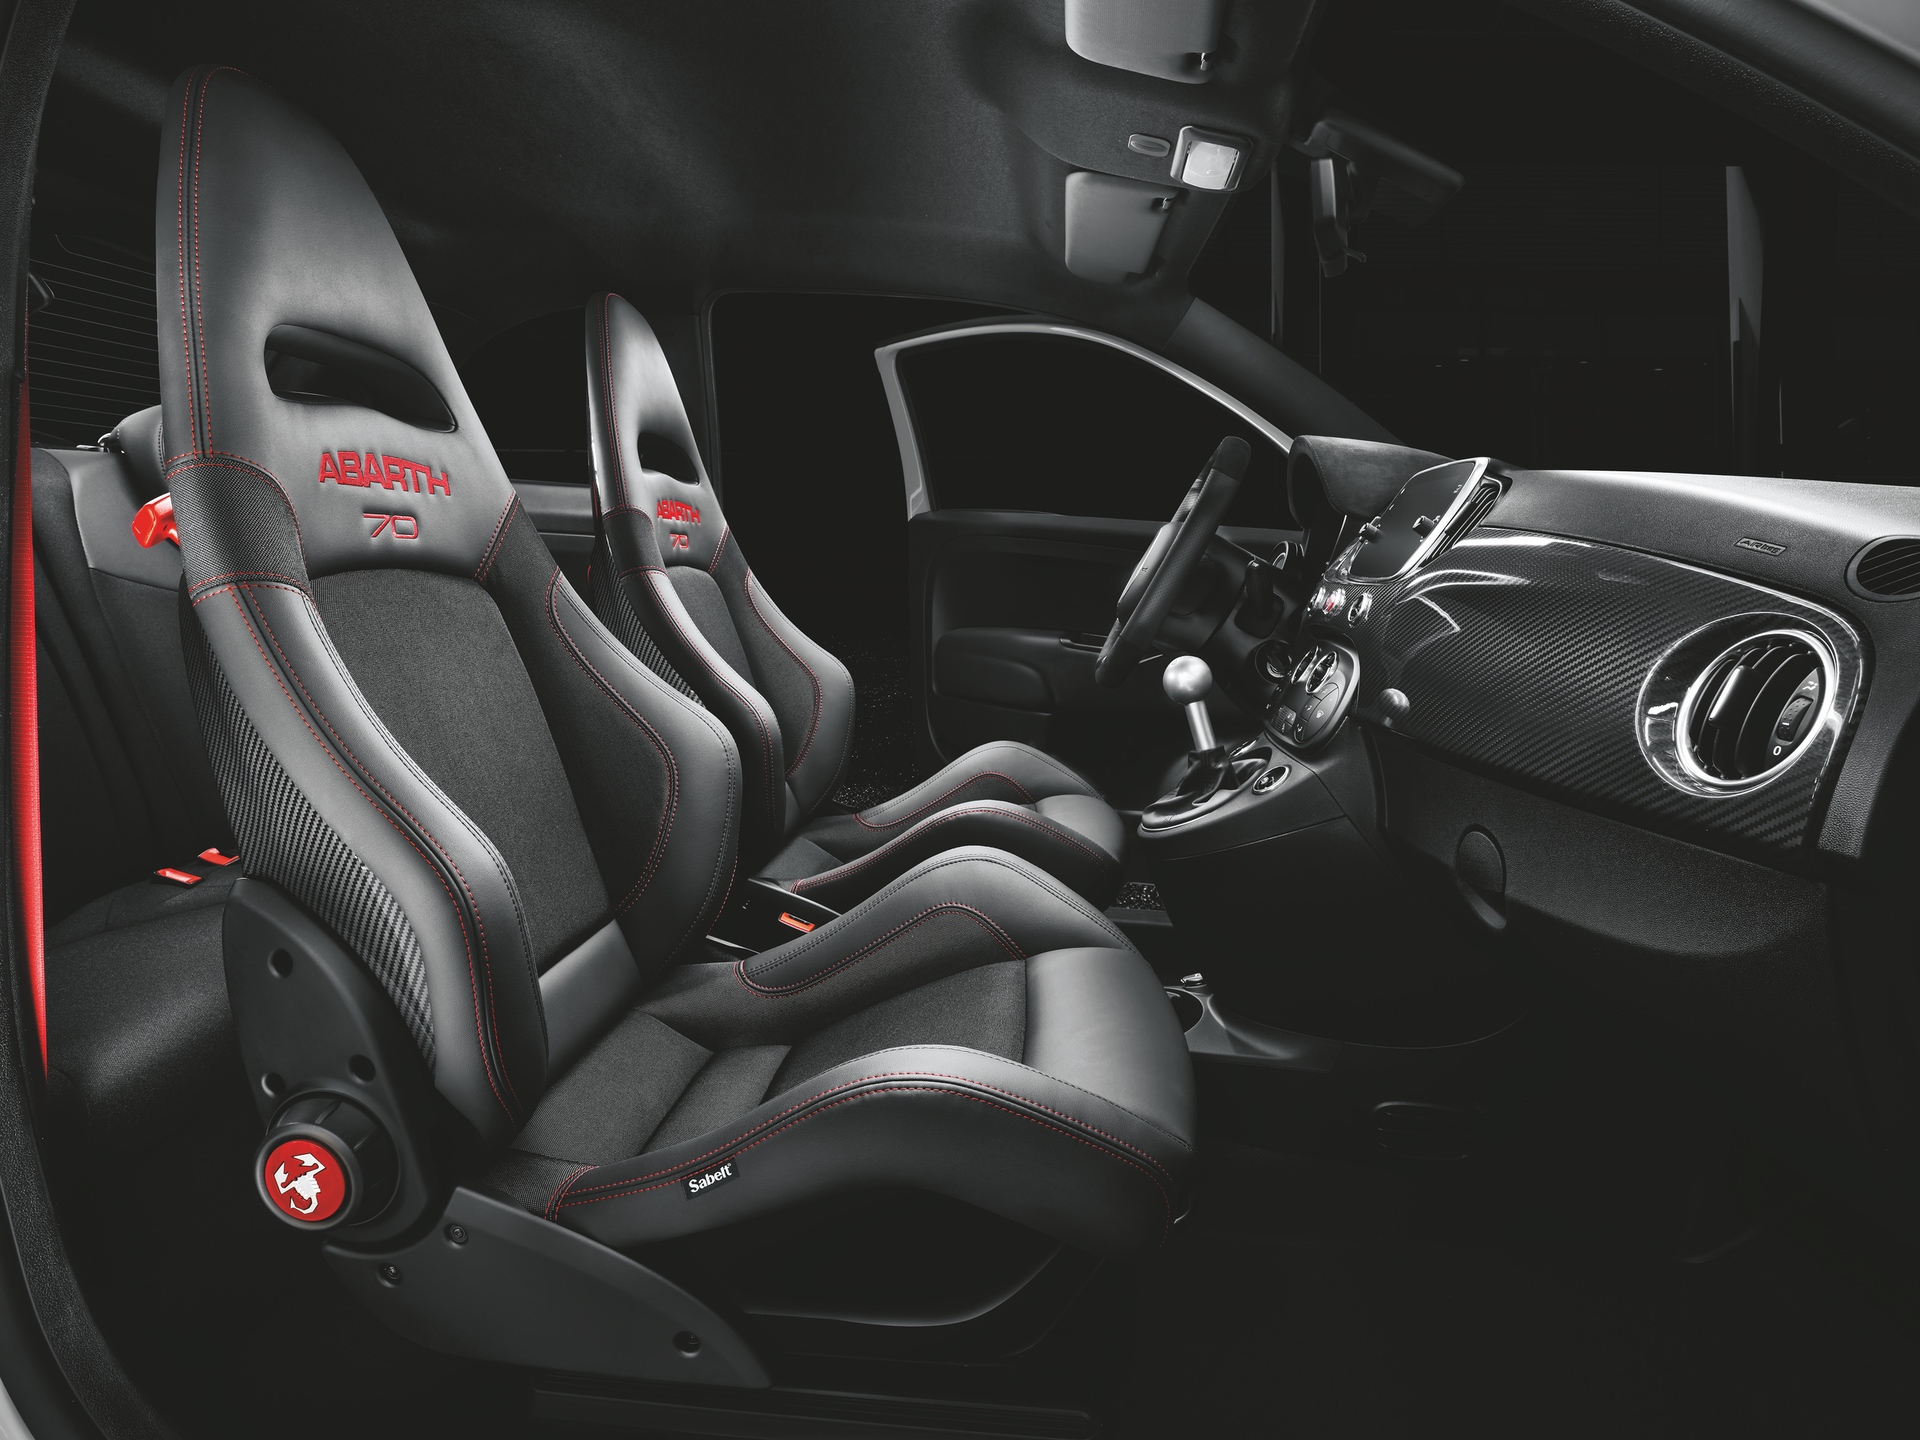 190225_Abarth_Abarth_595_esseesse_Sabelt_70_Racing_carbon_seats